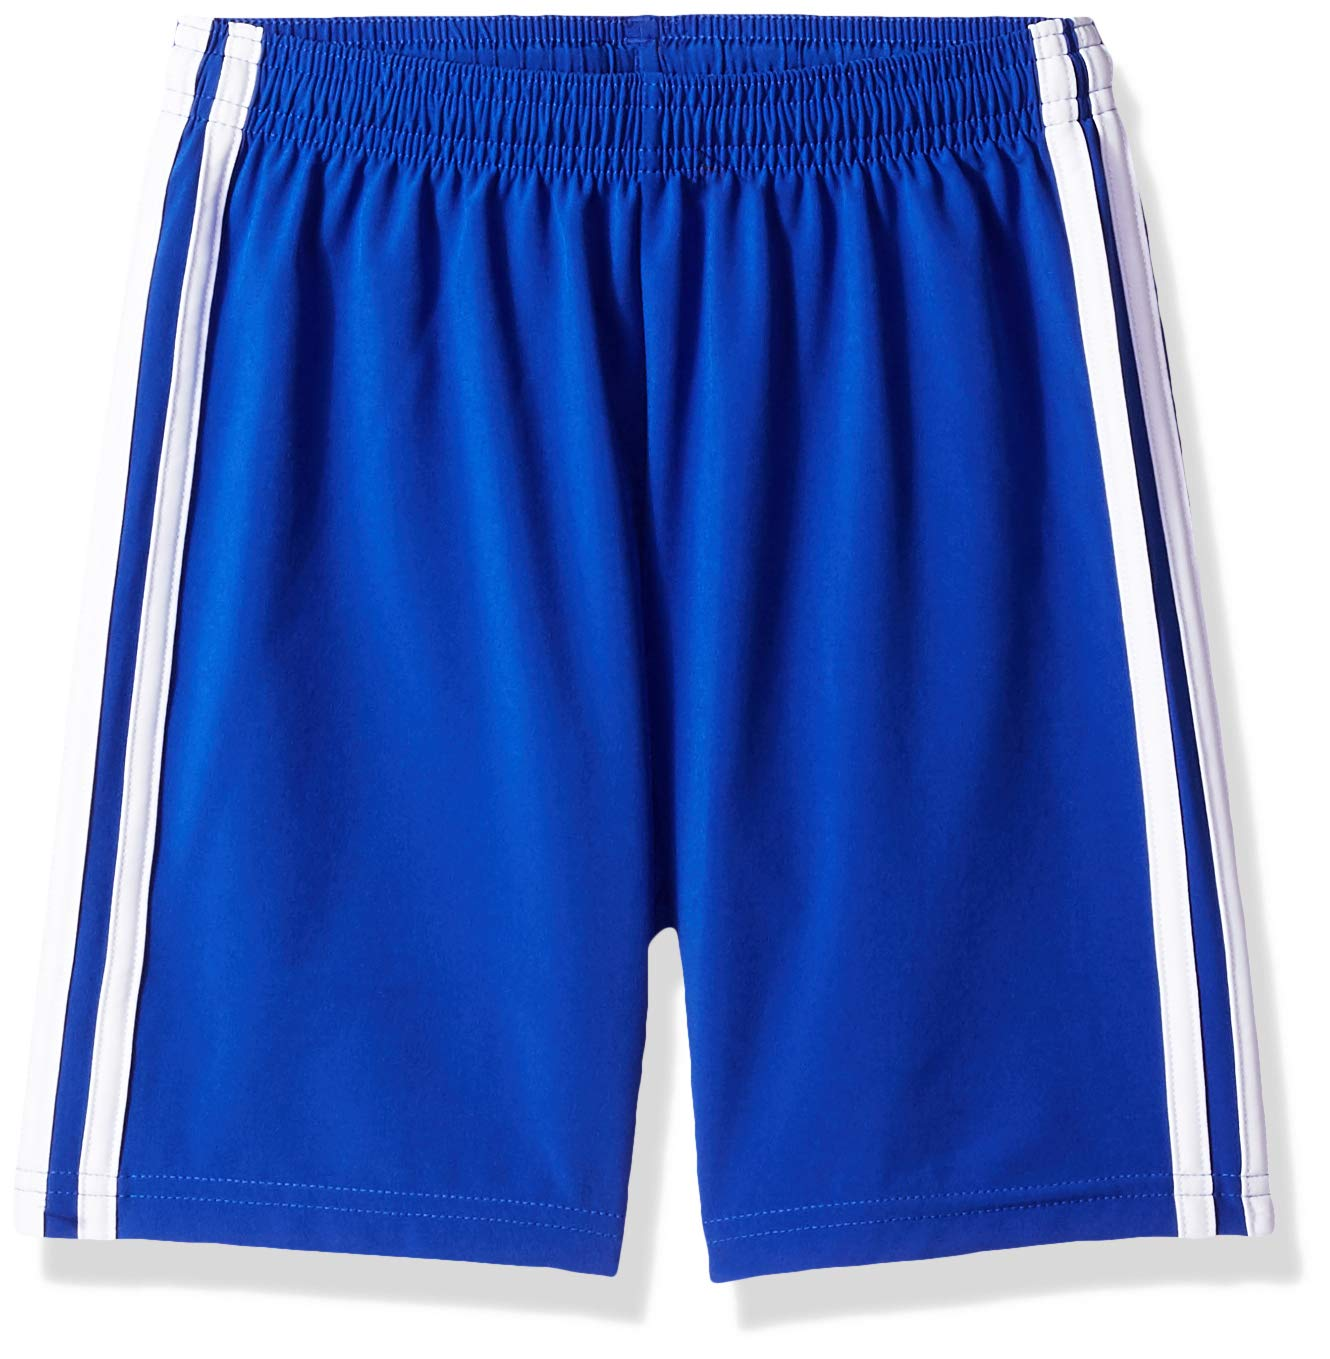 adidas Youth Condivo18 Youth Soccer Shorts, Bold Blue/White, XX-Small by adidas